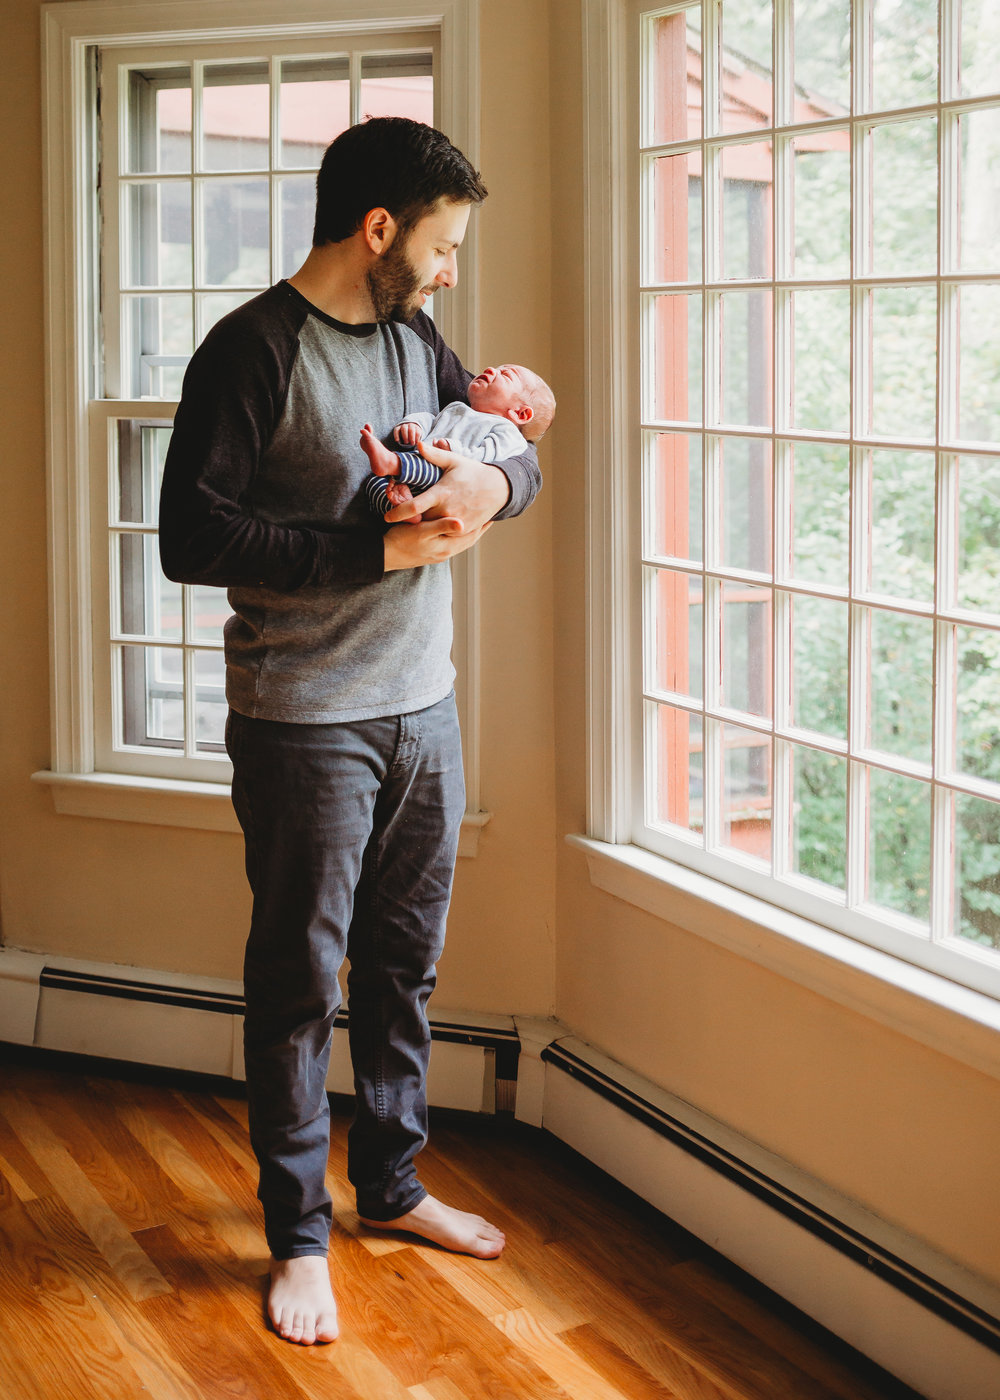 Dad holding newborn near windows. Sudbury newborn photography / Boston family photographer / natural light / lifestyle